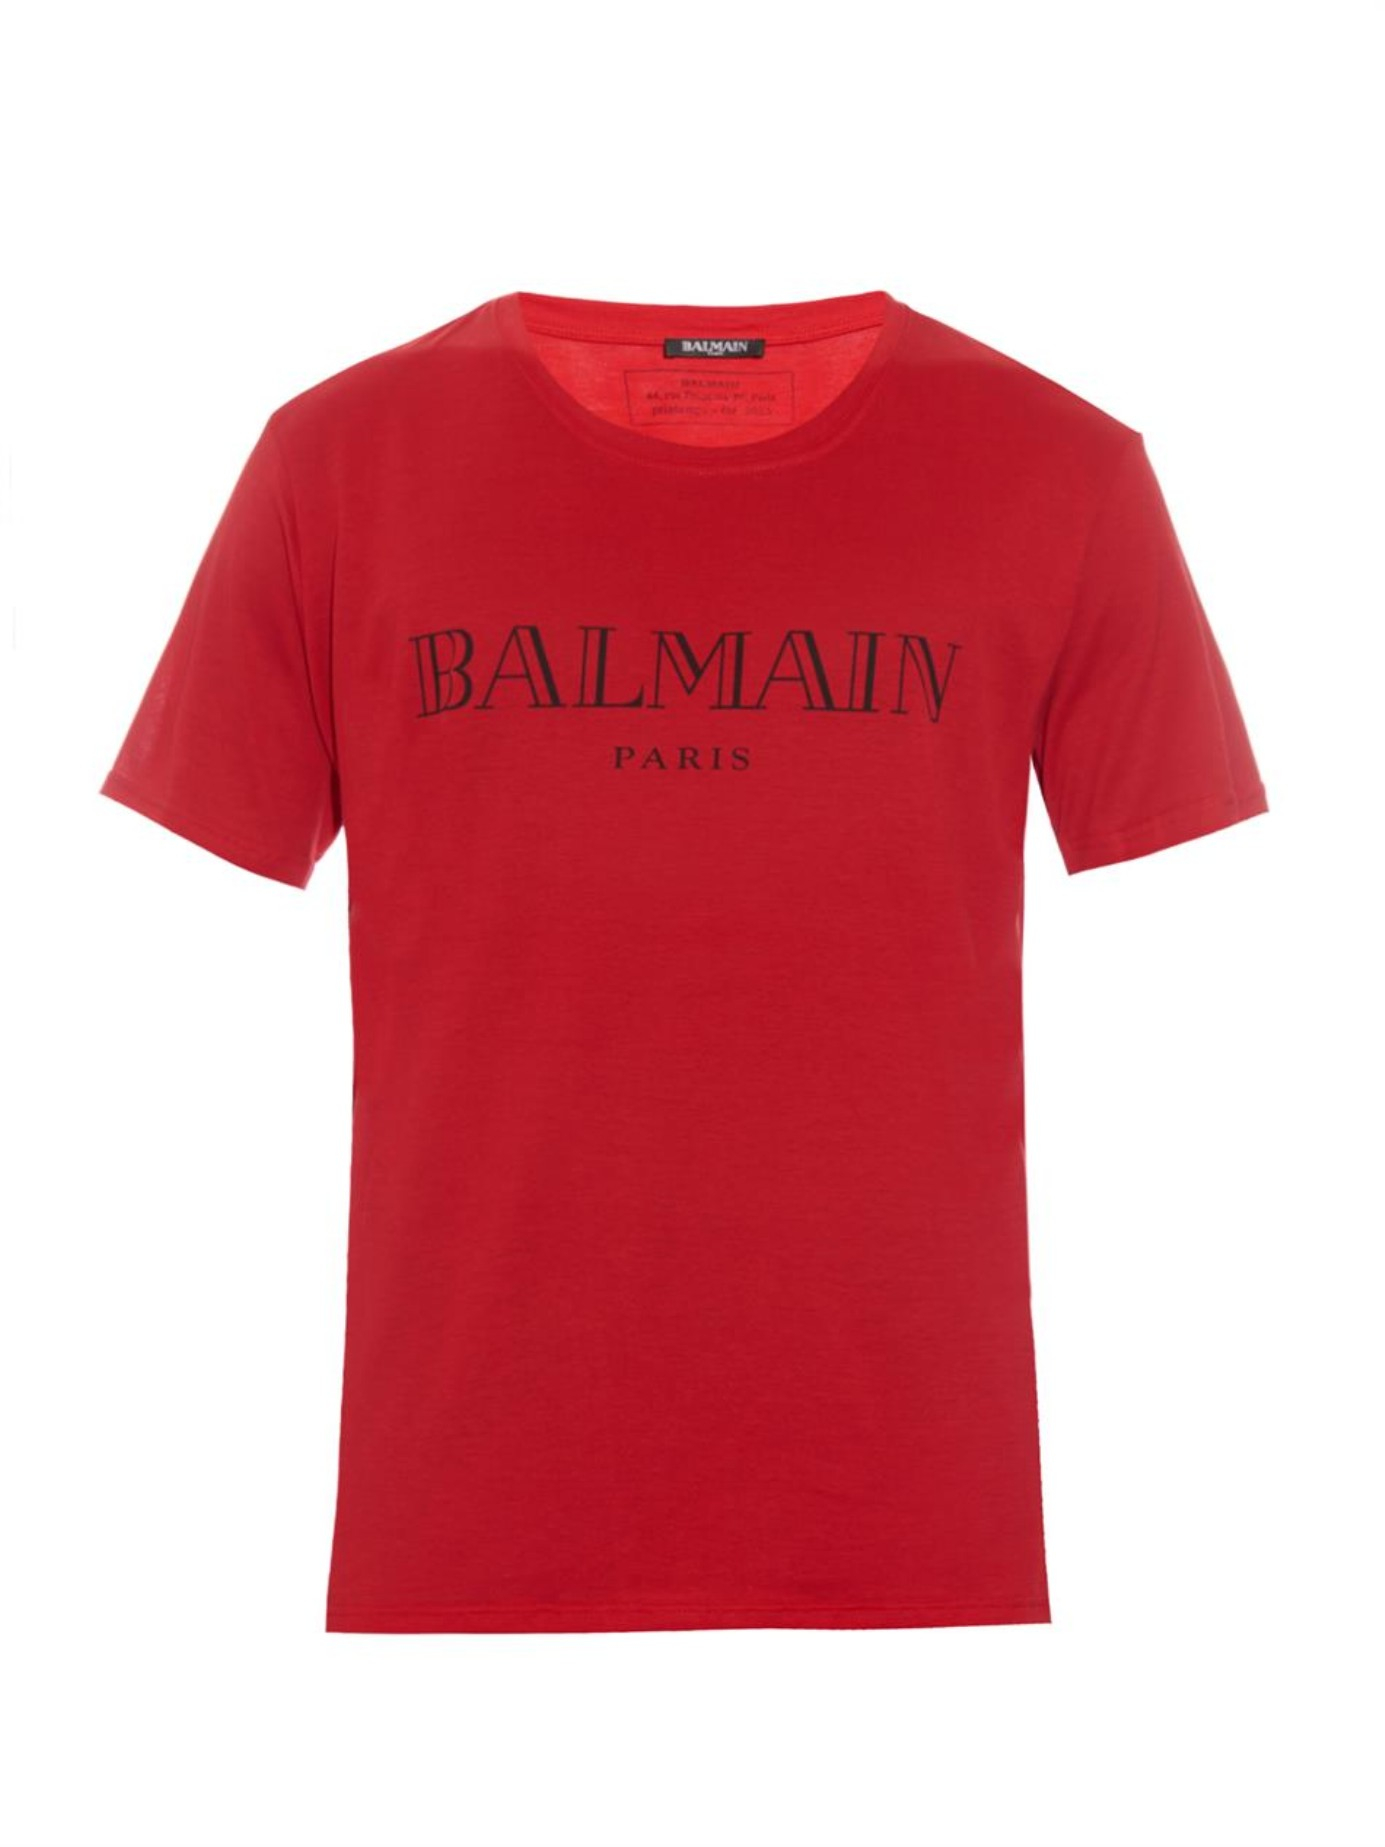 Find Balmain women's tees and tshirts at ShopStyle. Shop the latest collection of Balmain women's tees and tshirts from the most popular stores - all.